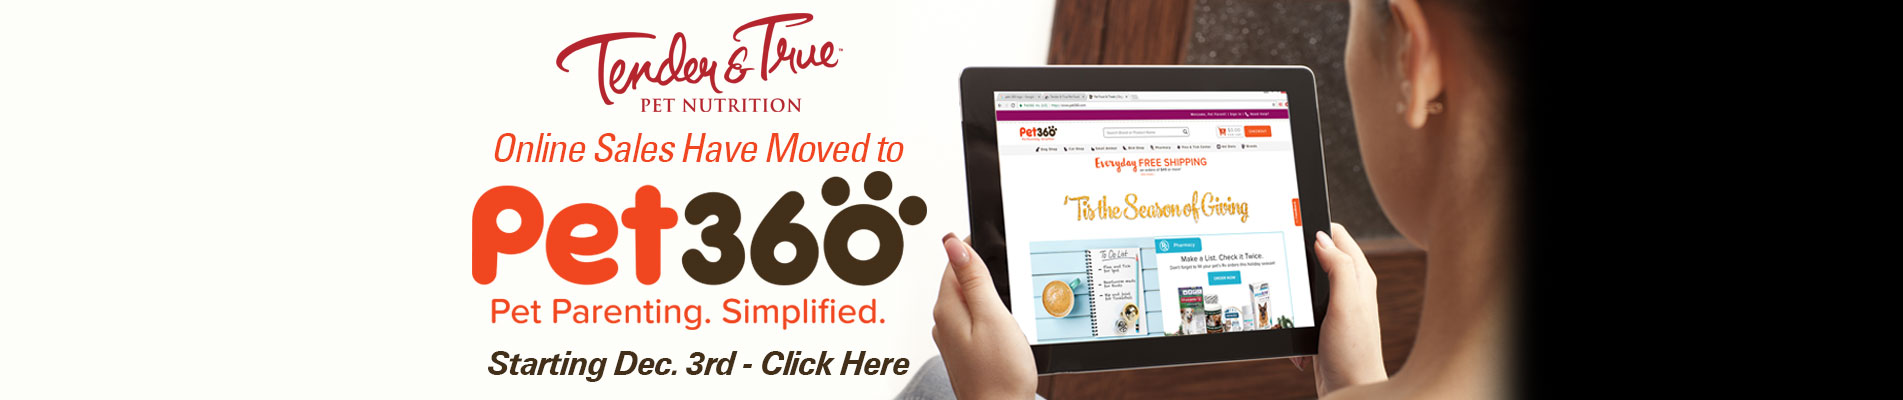 home_slideshow-NEW-SIZE-Coming-Soon-Pets360-2